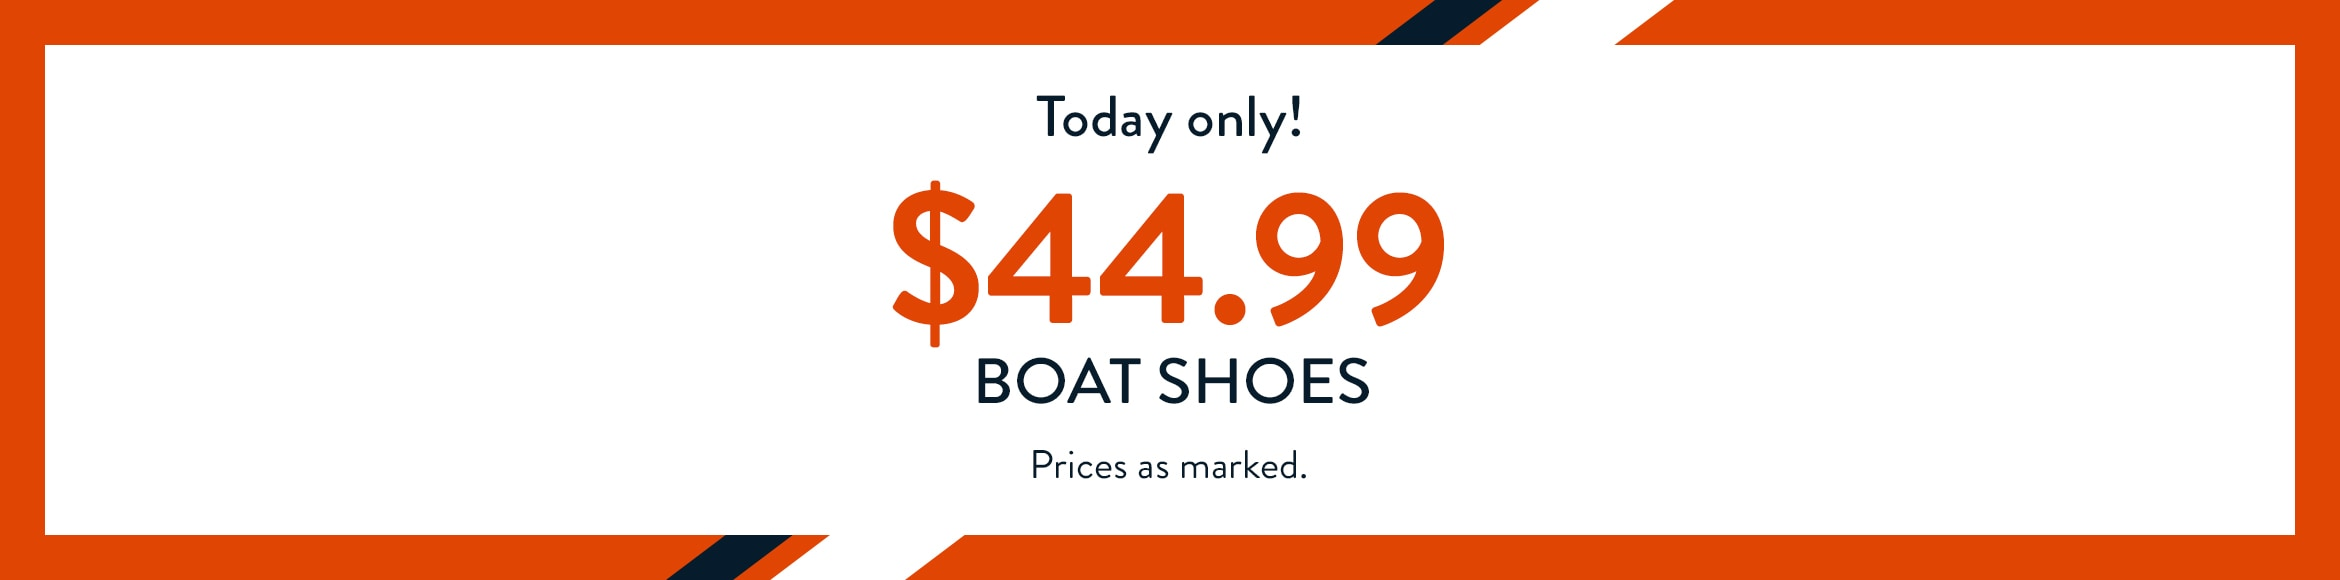 Today Only! $44.99 Boat Shoes. Prices as marked.